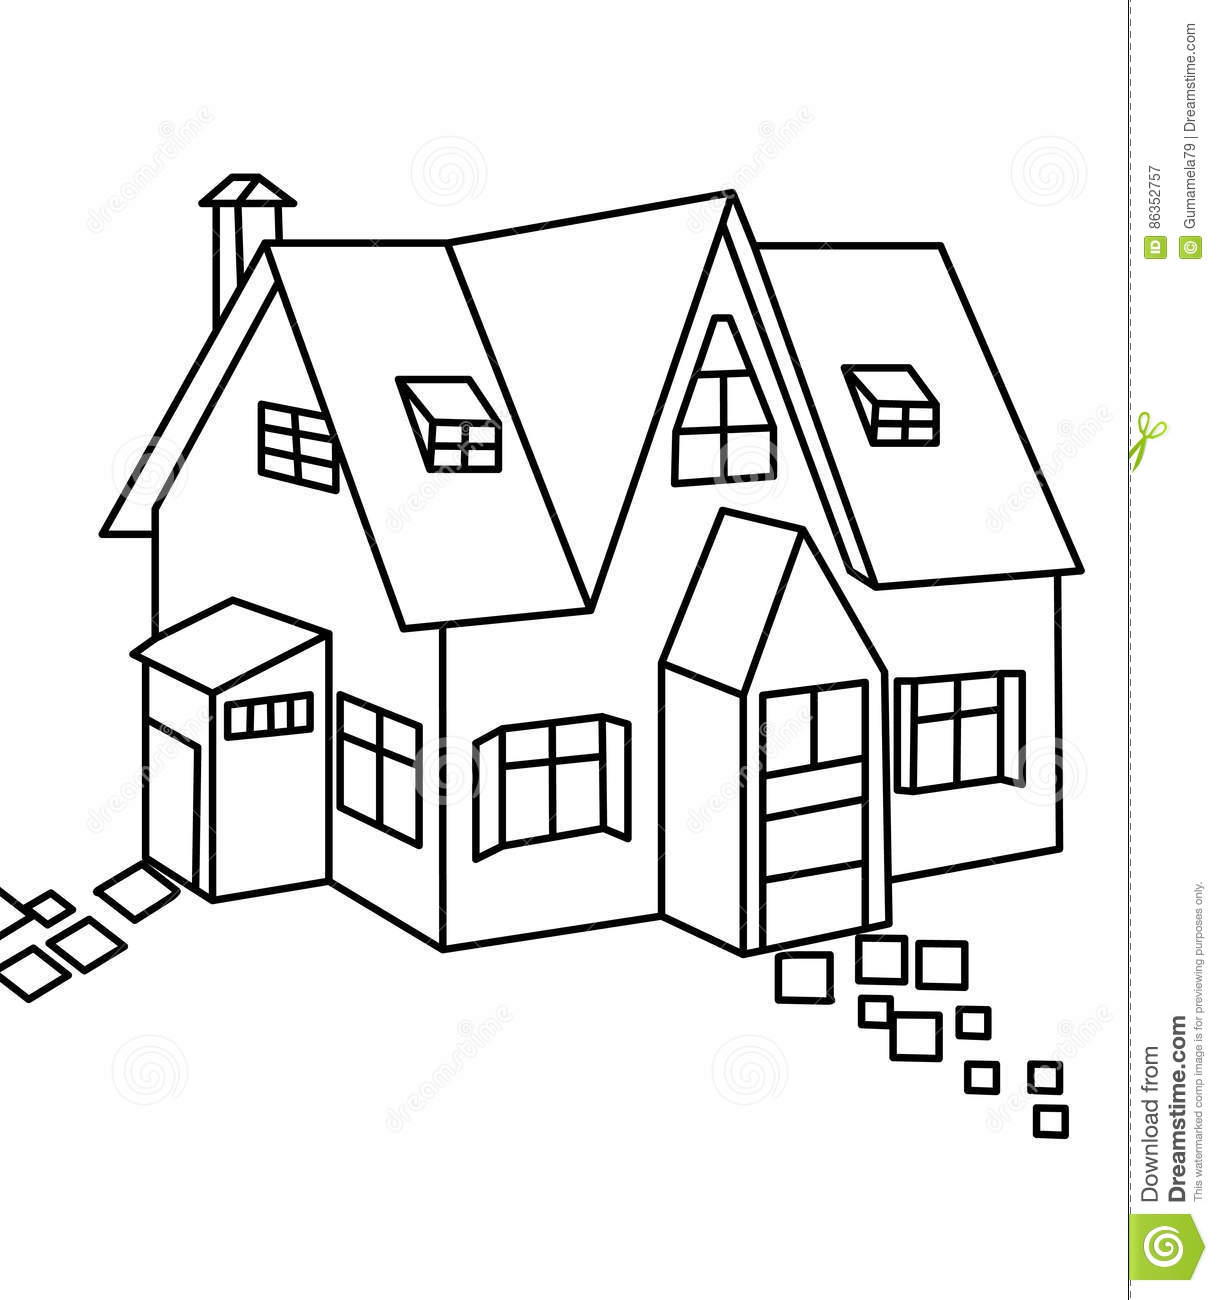 House coloring page stock illustration. Illustration of